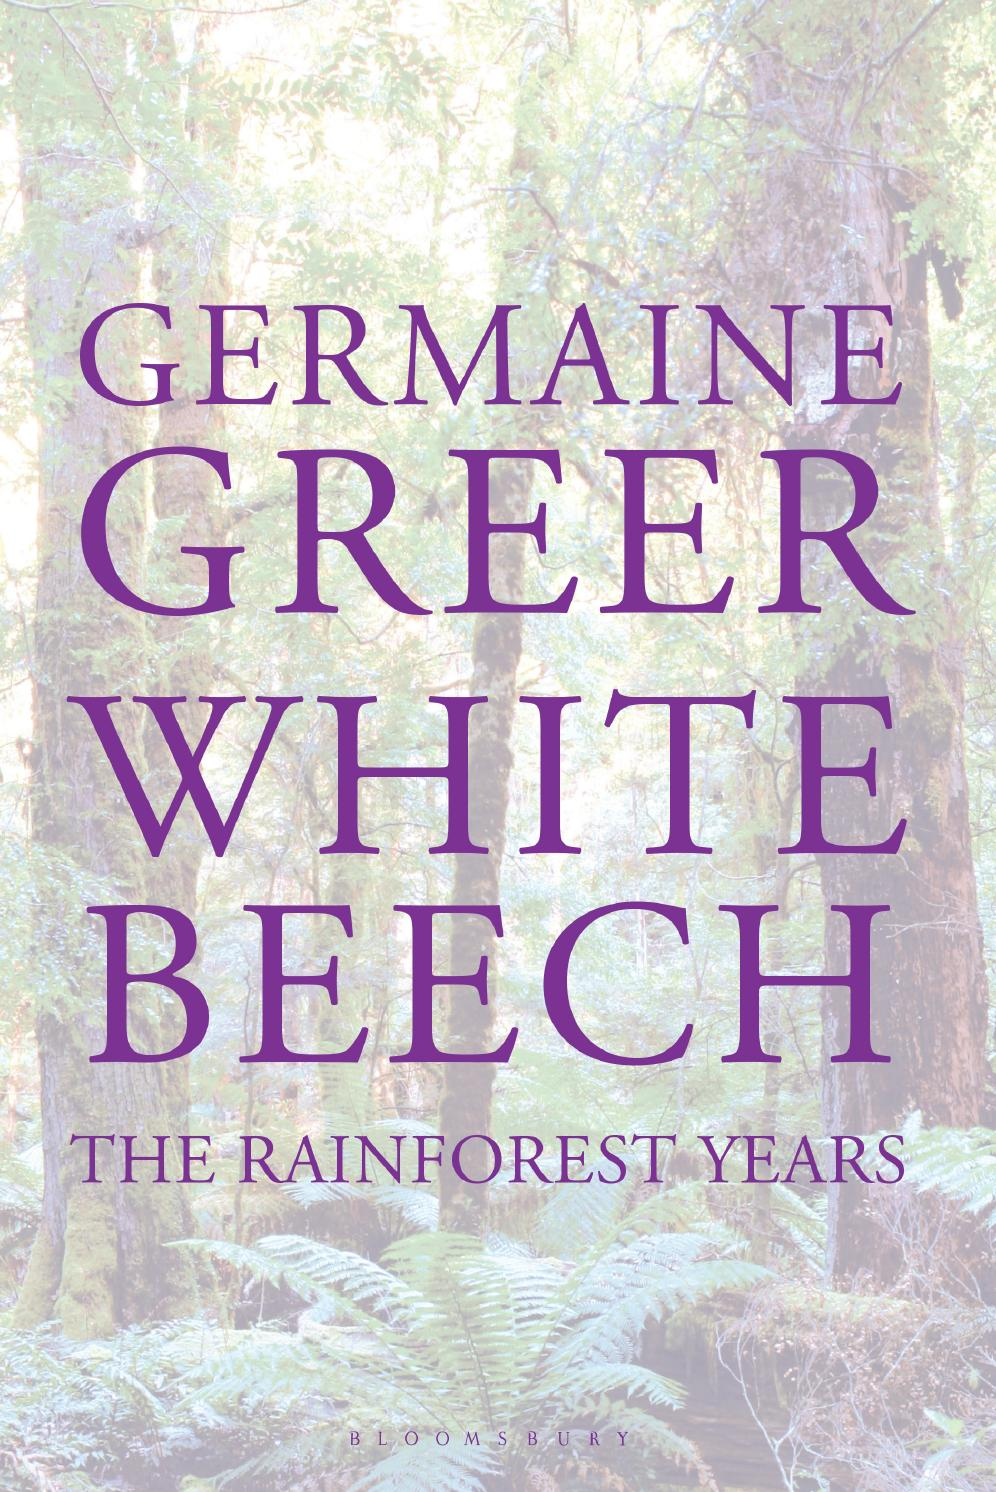 White Beech: The Rainforest Years, by Germaine Greer by Bloomsbury  Publishing - issuu